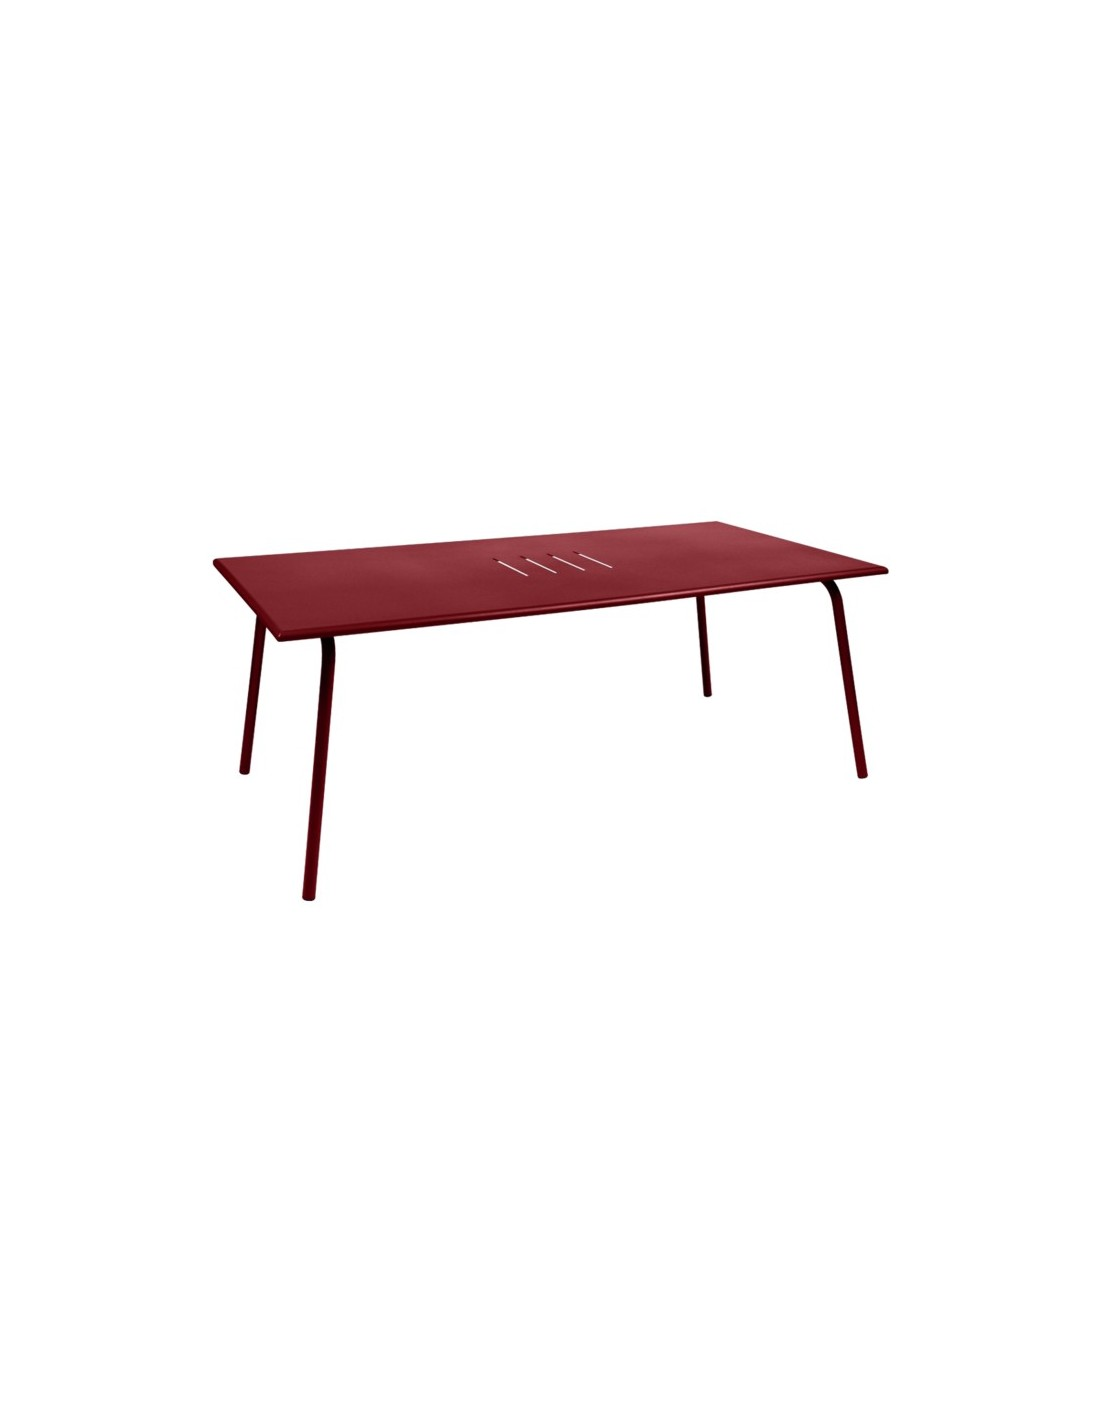 Table de jardin monceau 194x94 cm fermob for Table de jardin 8 personnes